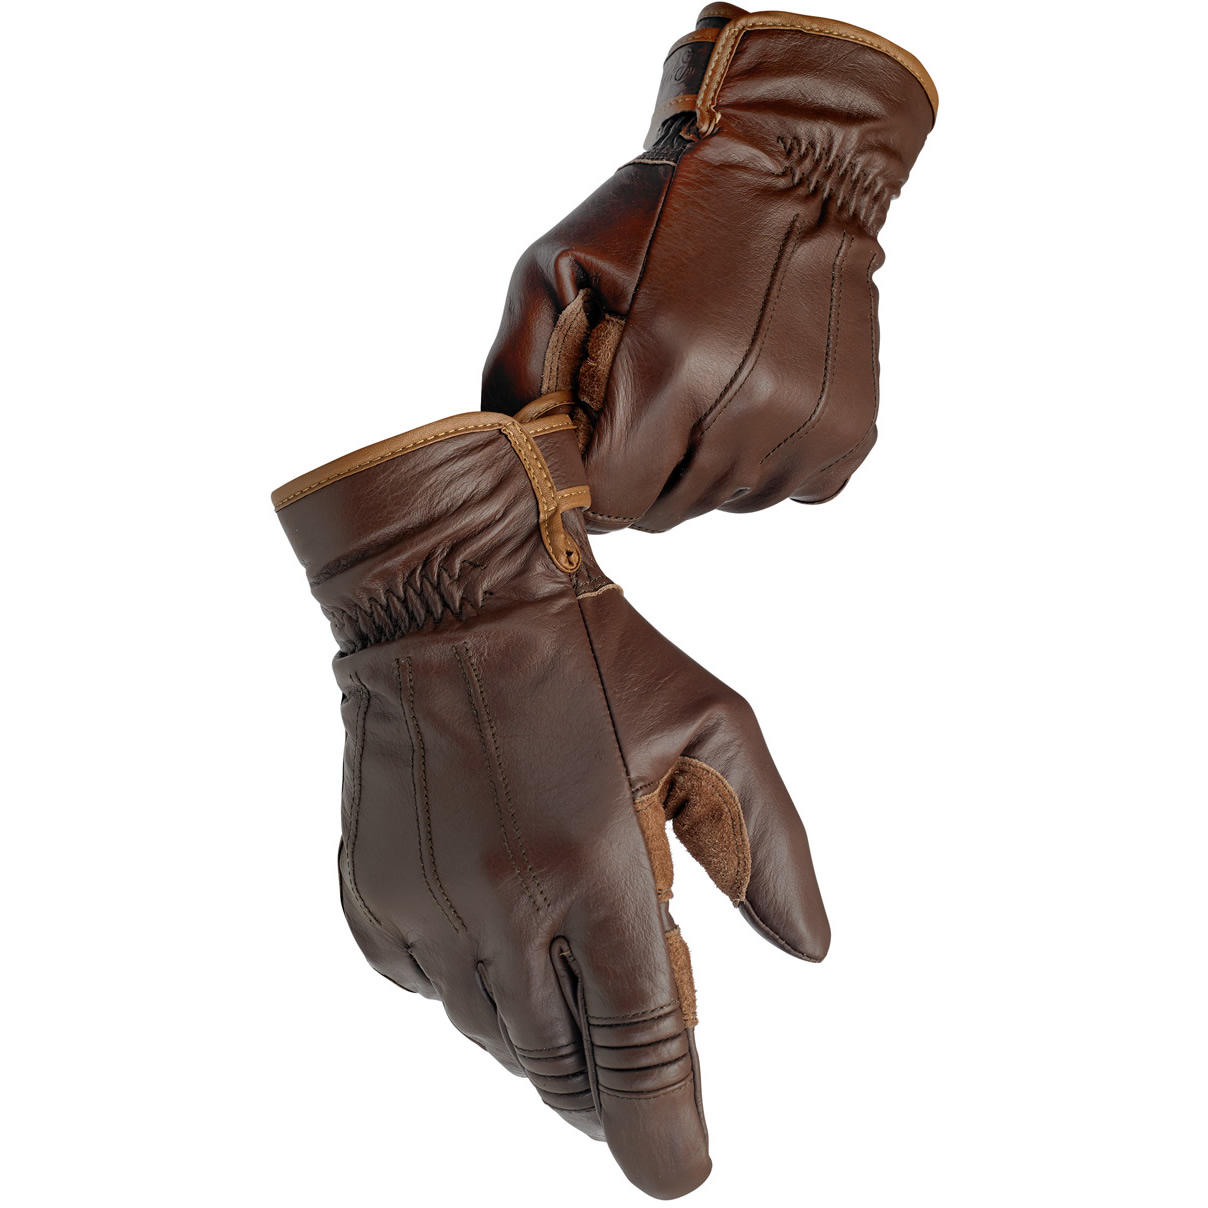 Biltwell Leather Work Motorcycle Gloves Chocolate L